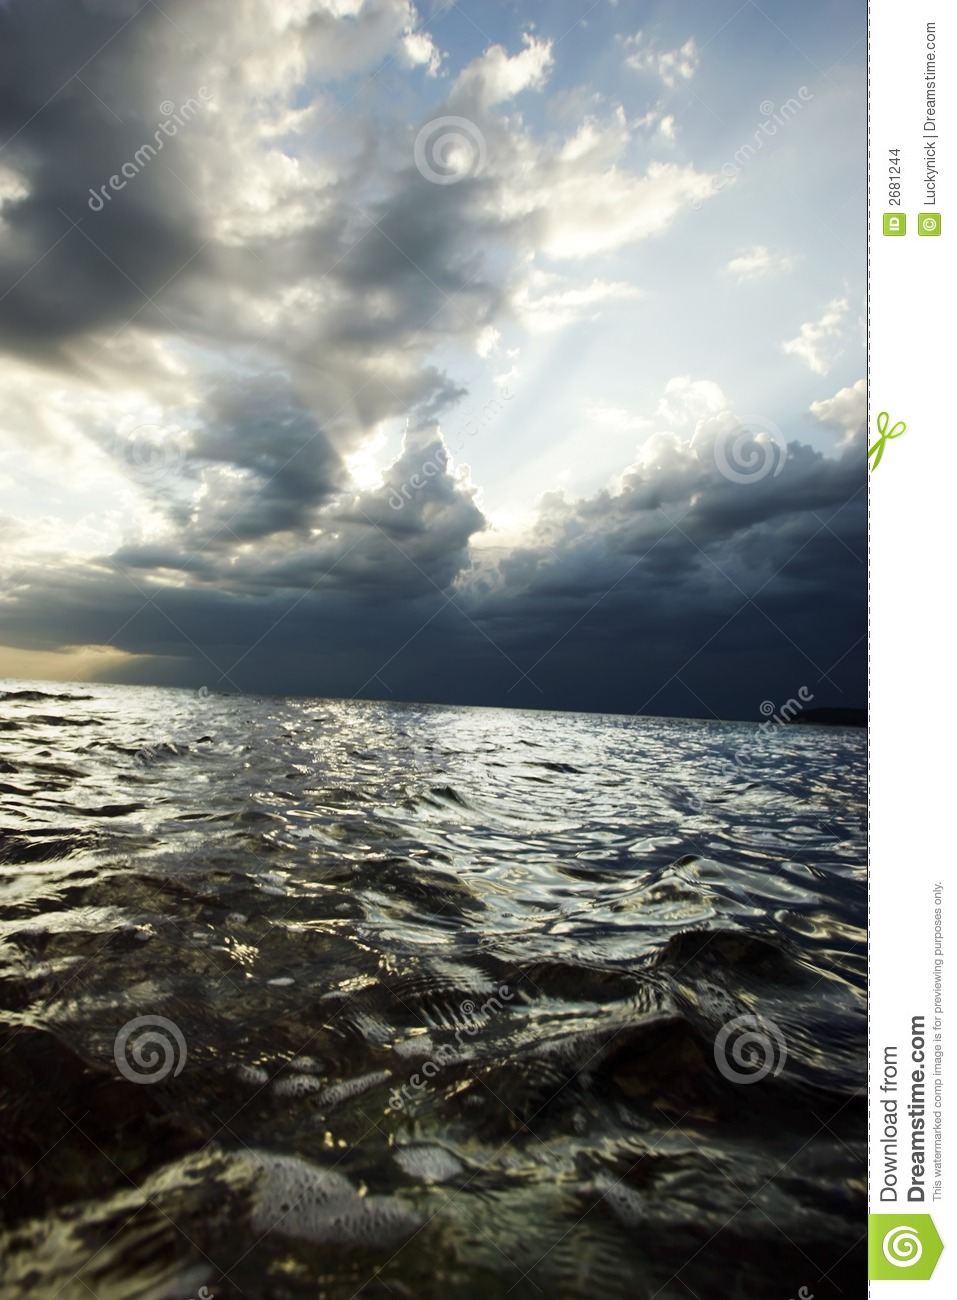 Sea before the storm